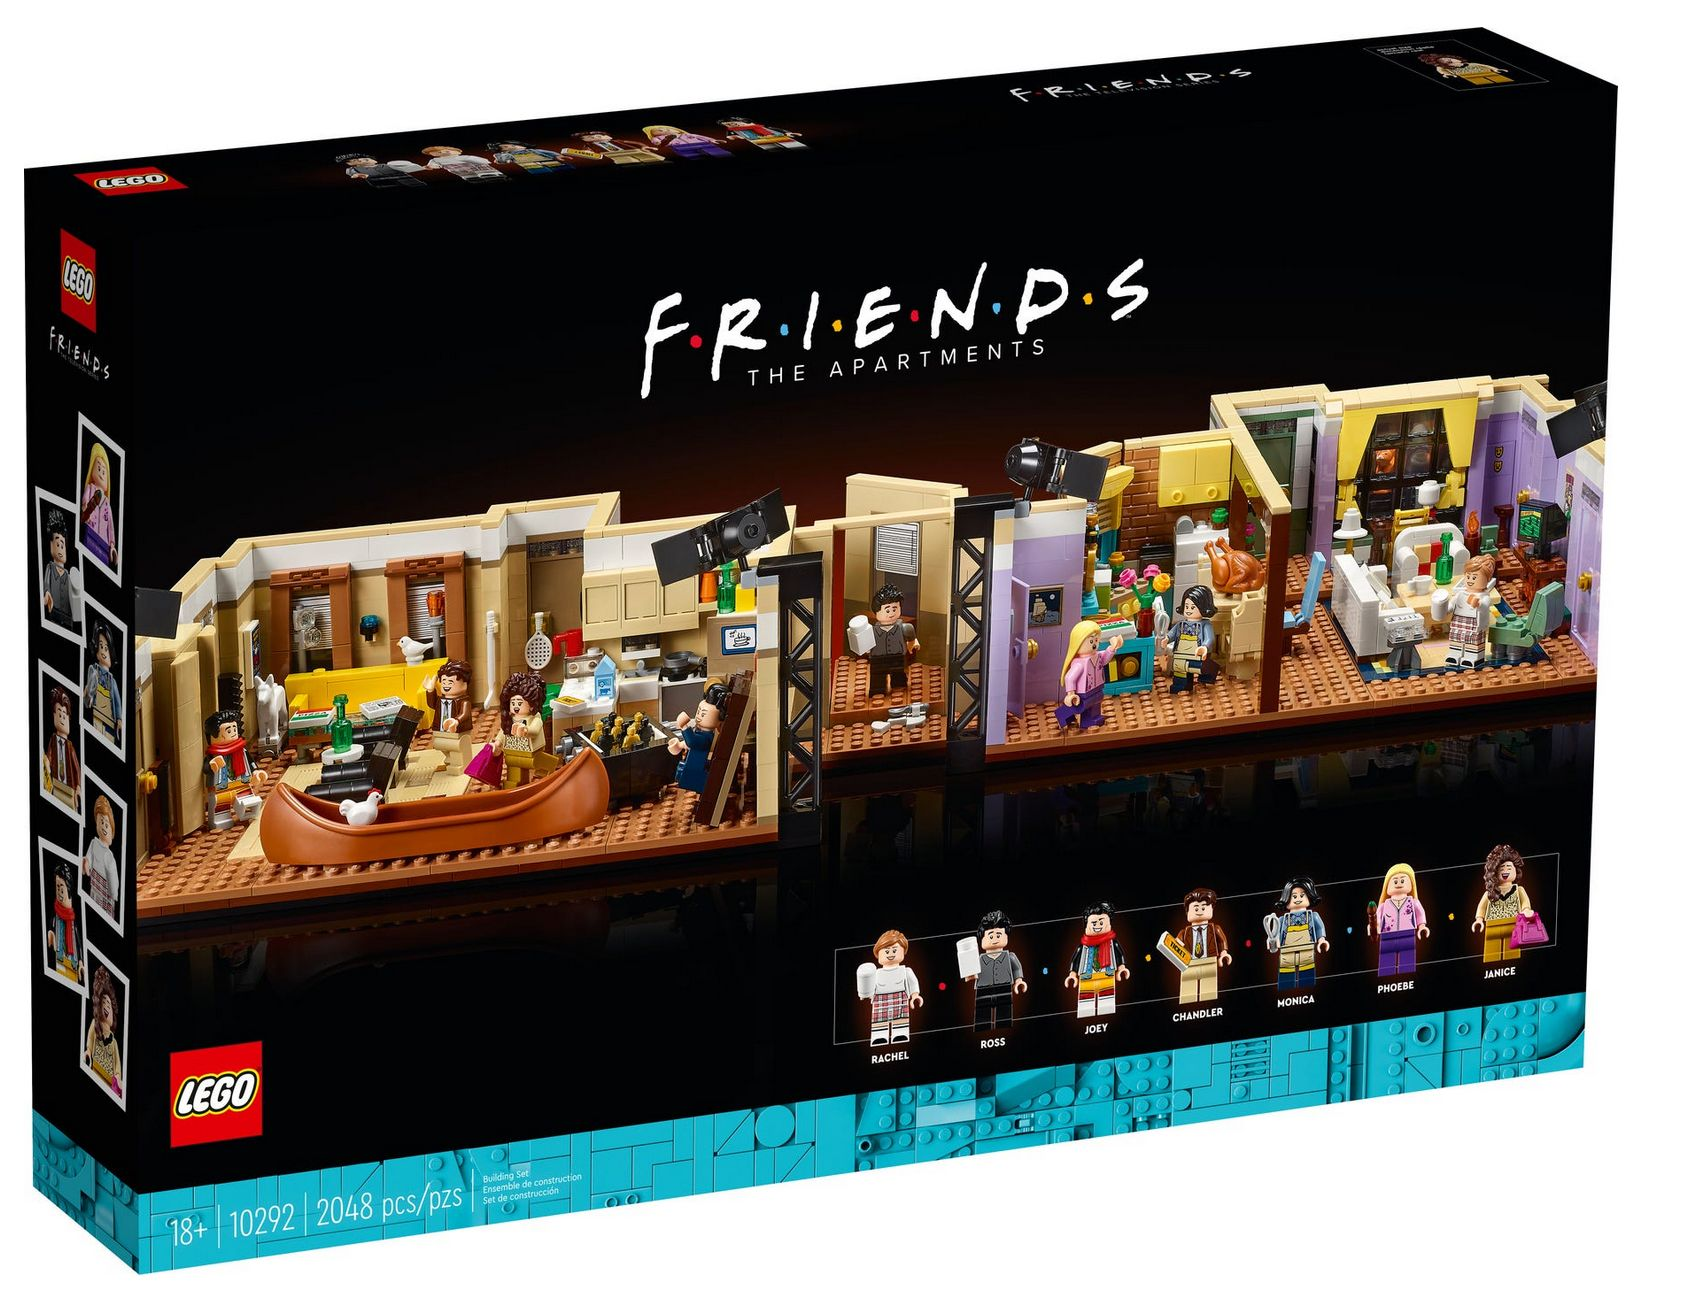 The New LEGO Friends Apartments Set Is Loaded with Fan-Favorite Moments